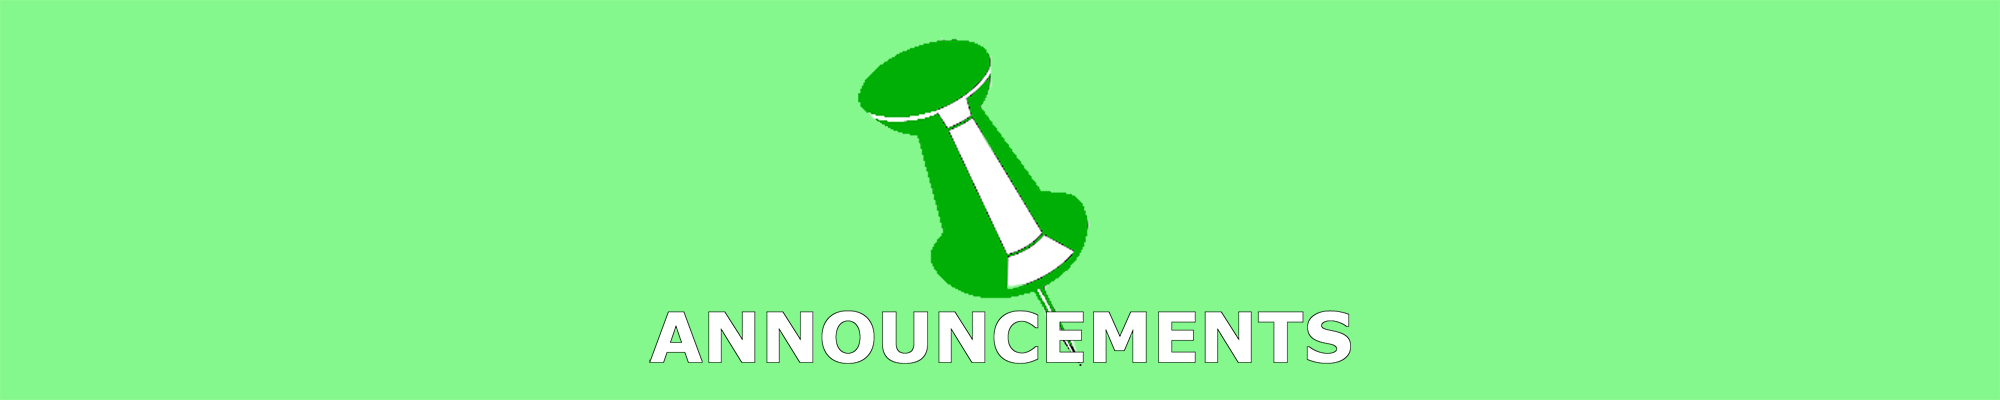 Announcements header